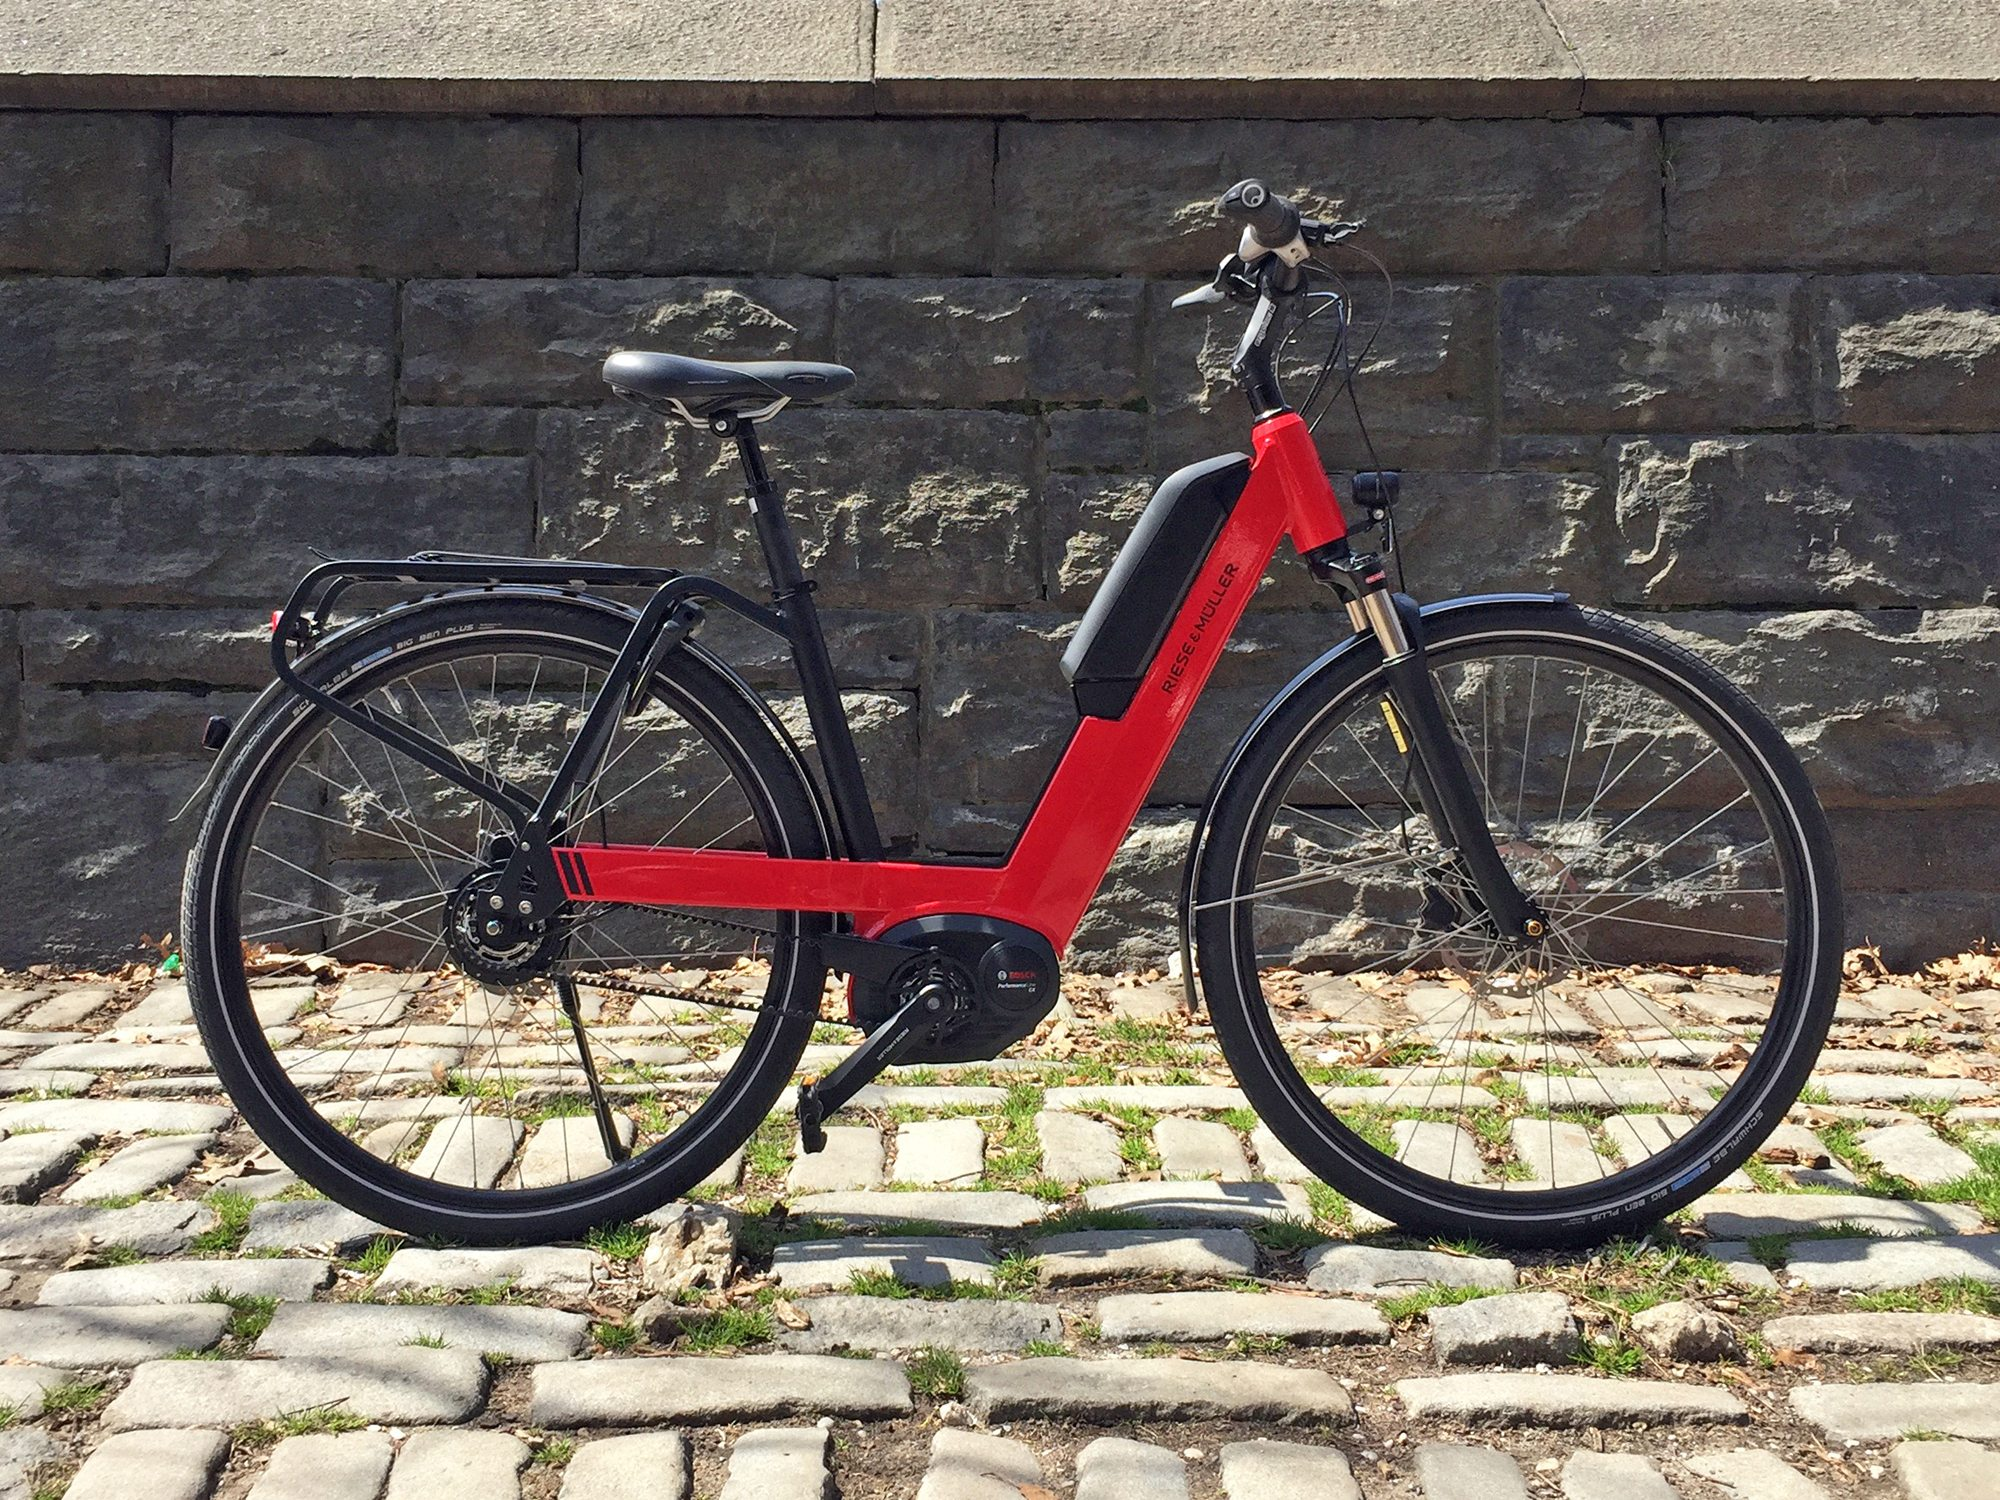 b48885f3c5f Riese & Müller Nevo NuVinci Review - Prices, Specs, Videos, Photos